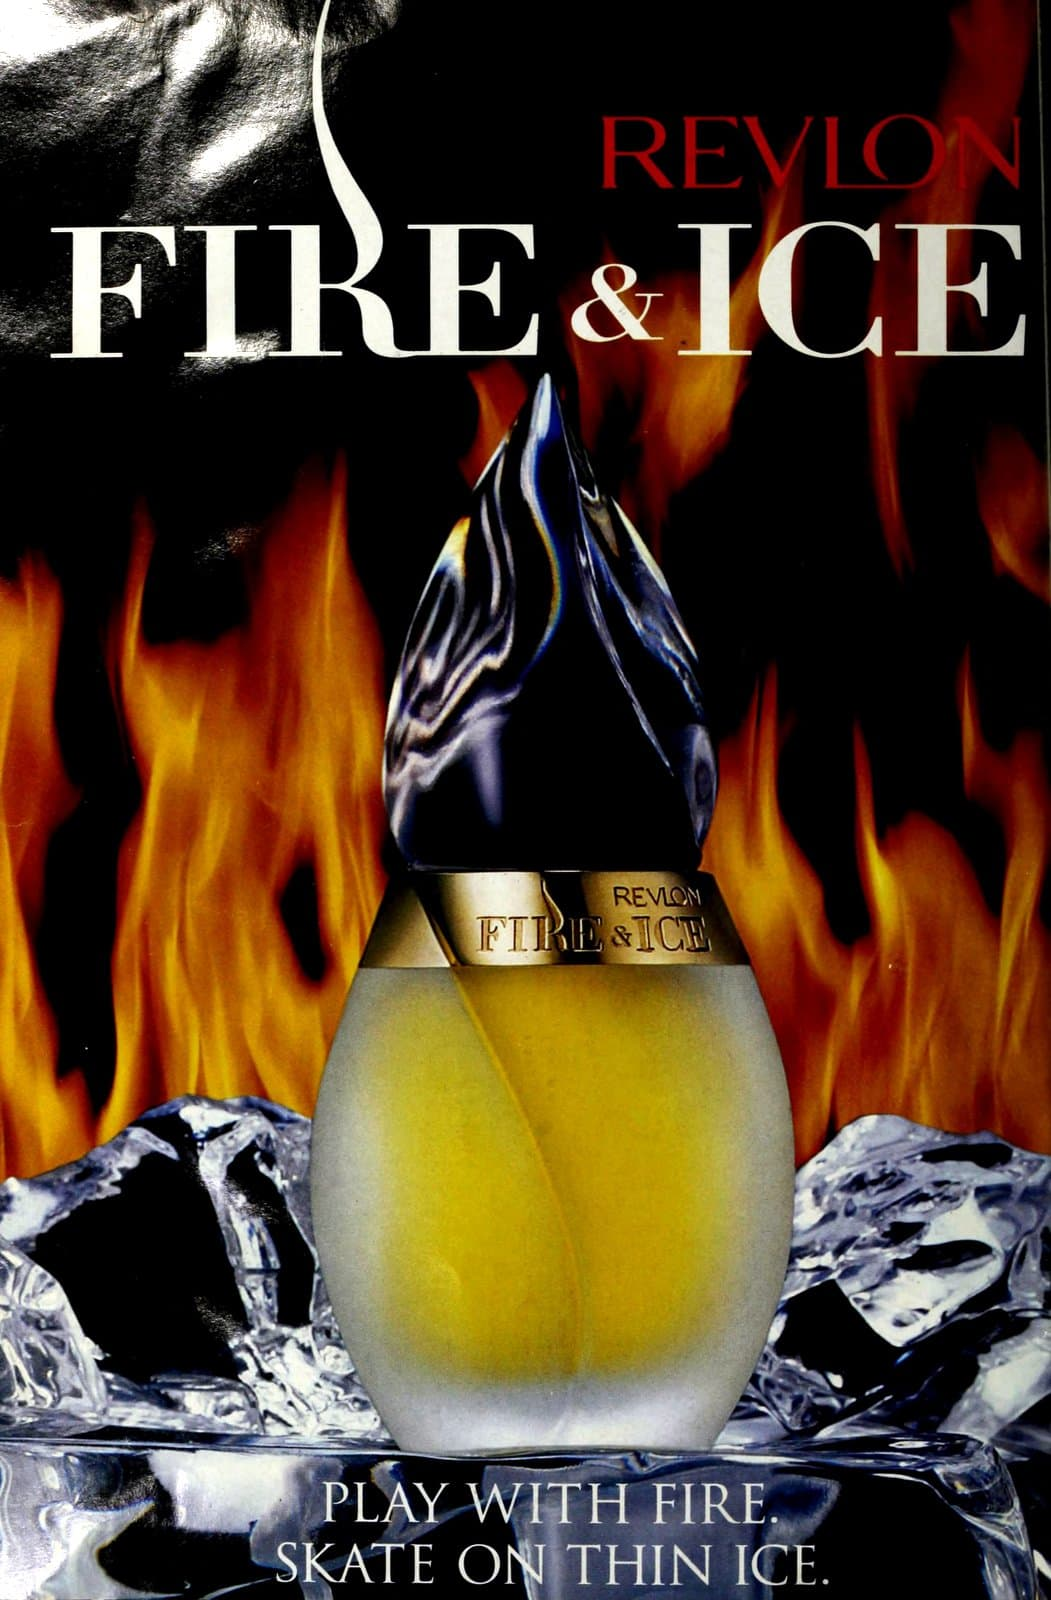 Fire and Ice fragrance from Revlon (1994) at ClickAmericana.com